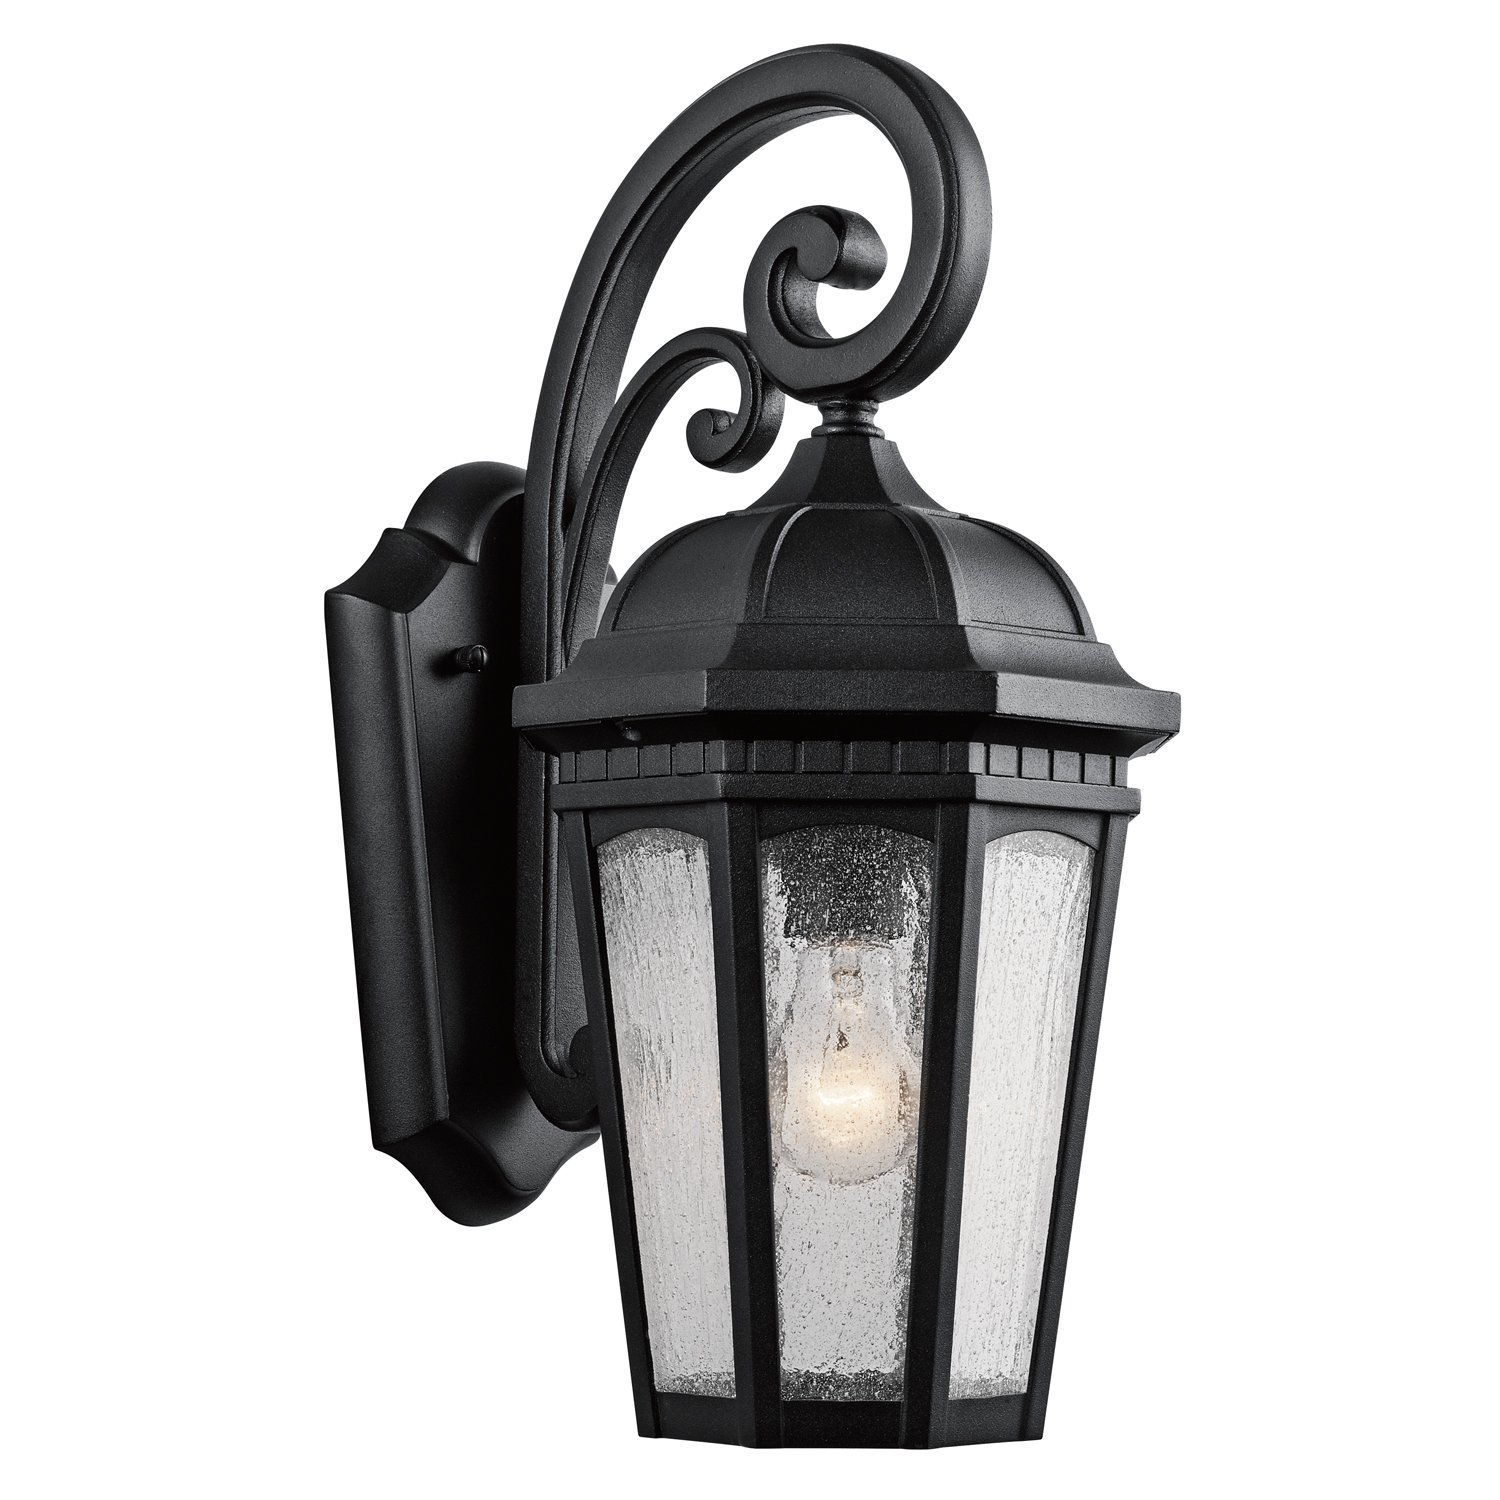 Kichler 9034rz Three Light Outdoor Wall Mount Wall Porch Lights Amazon Com